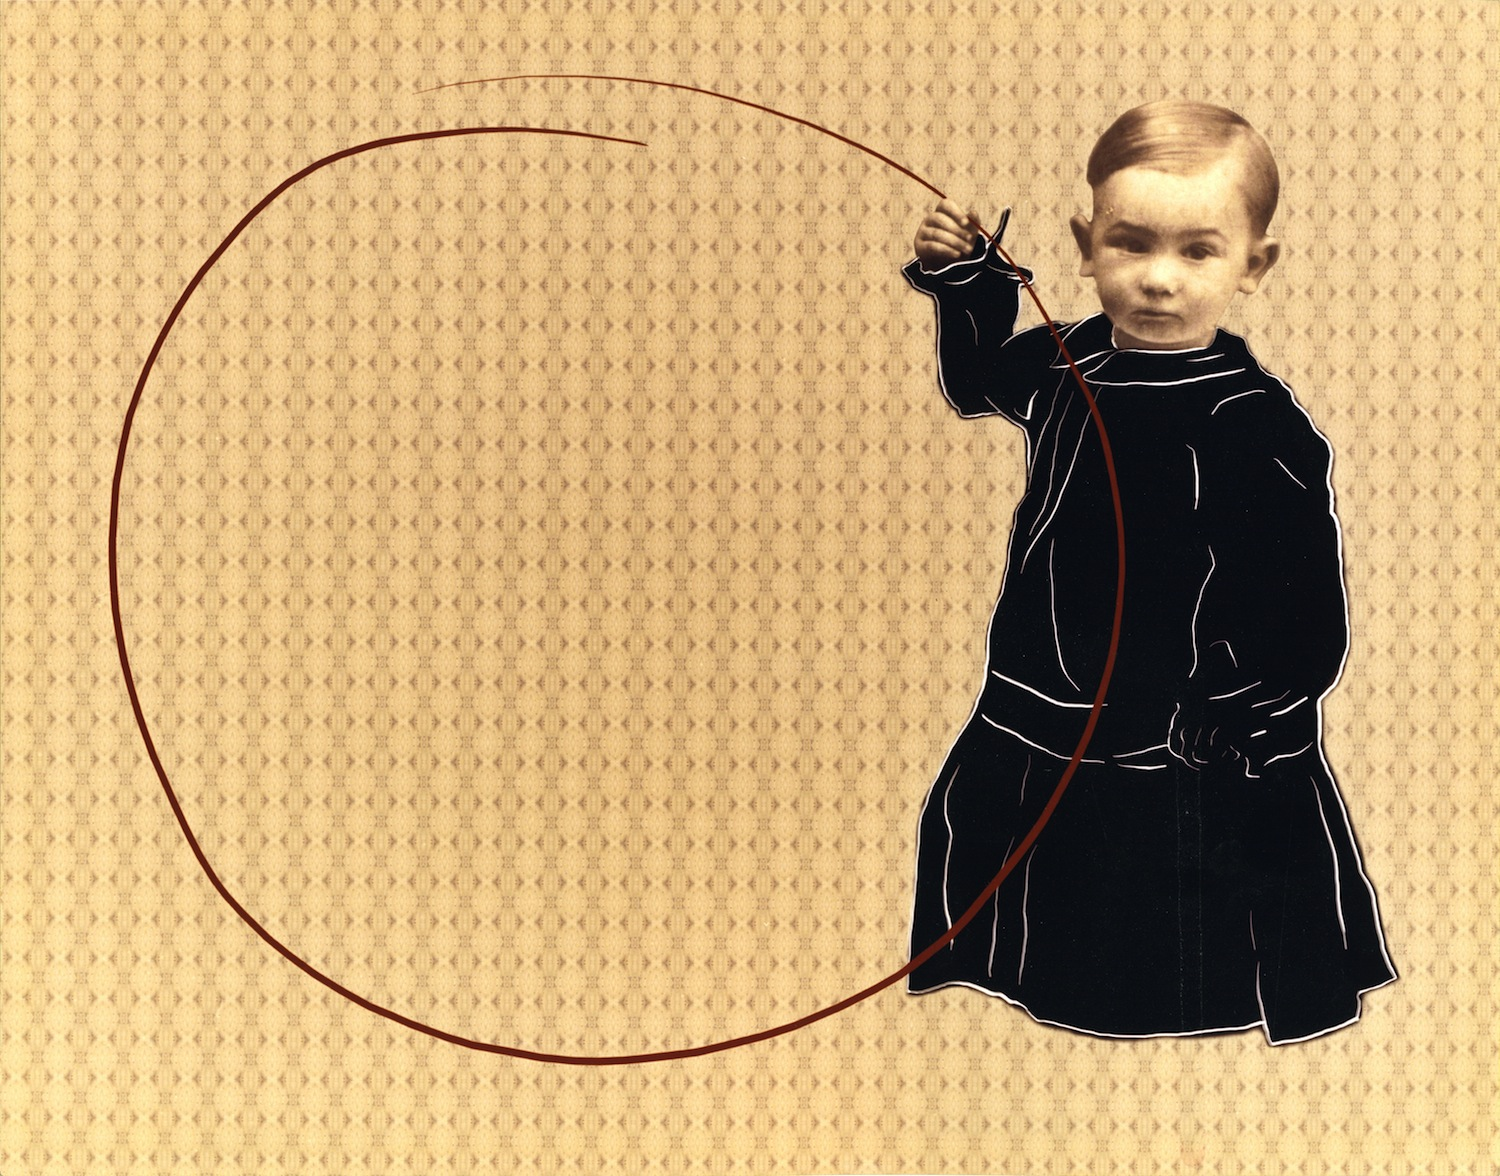 SHARON SWITZER  Child with Hoop  from Child's Play, 1999-2000 C-print